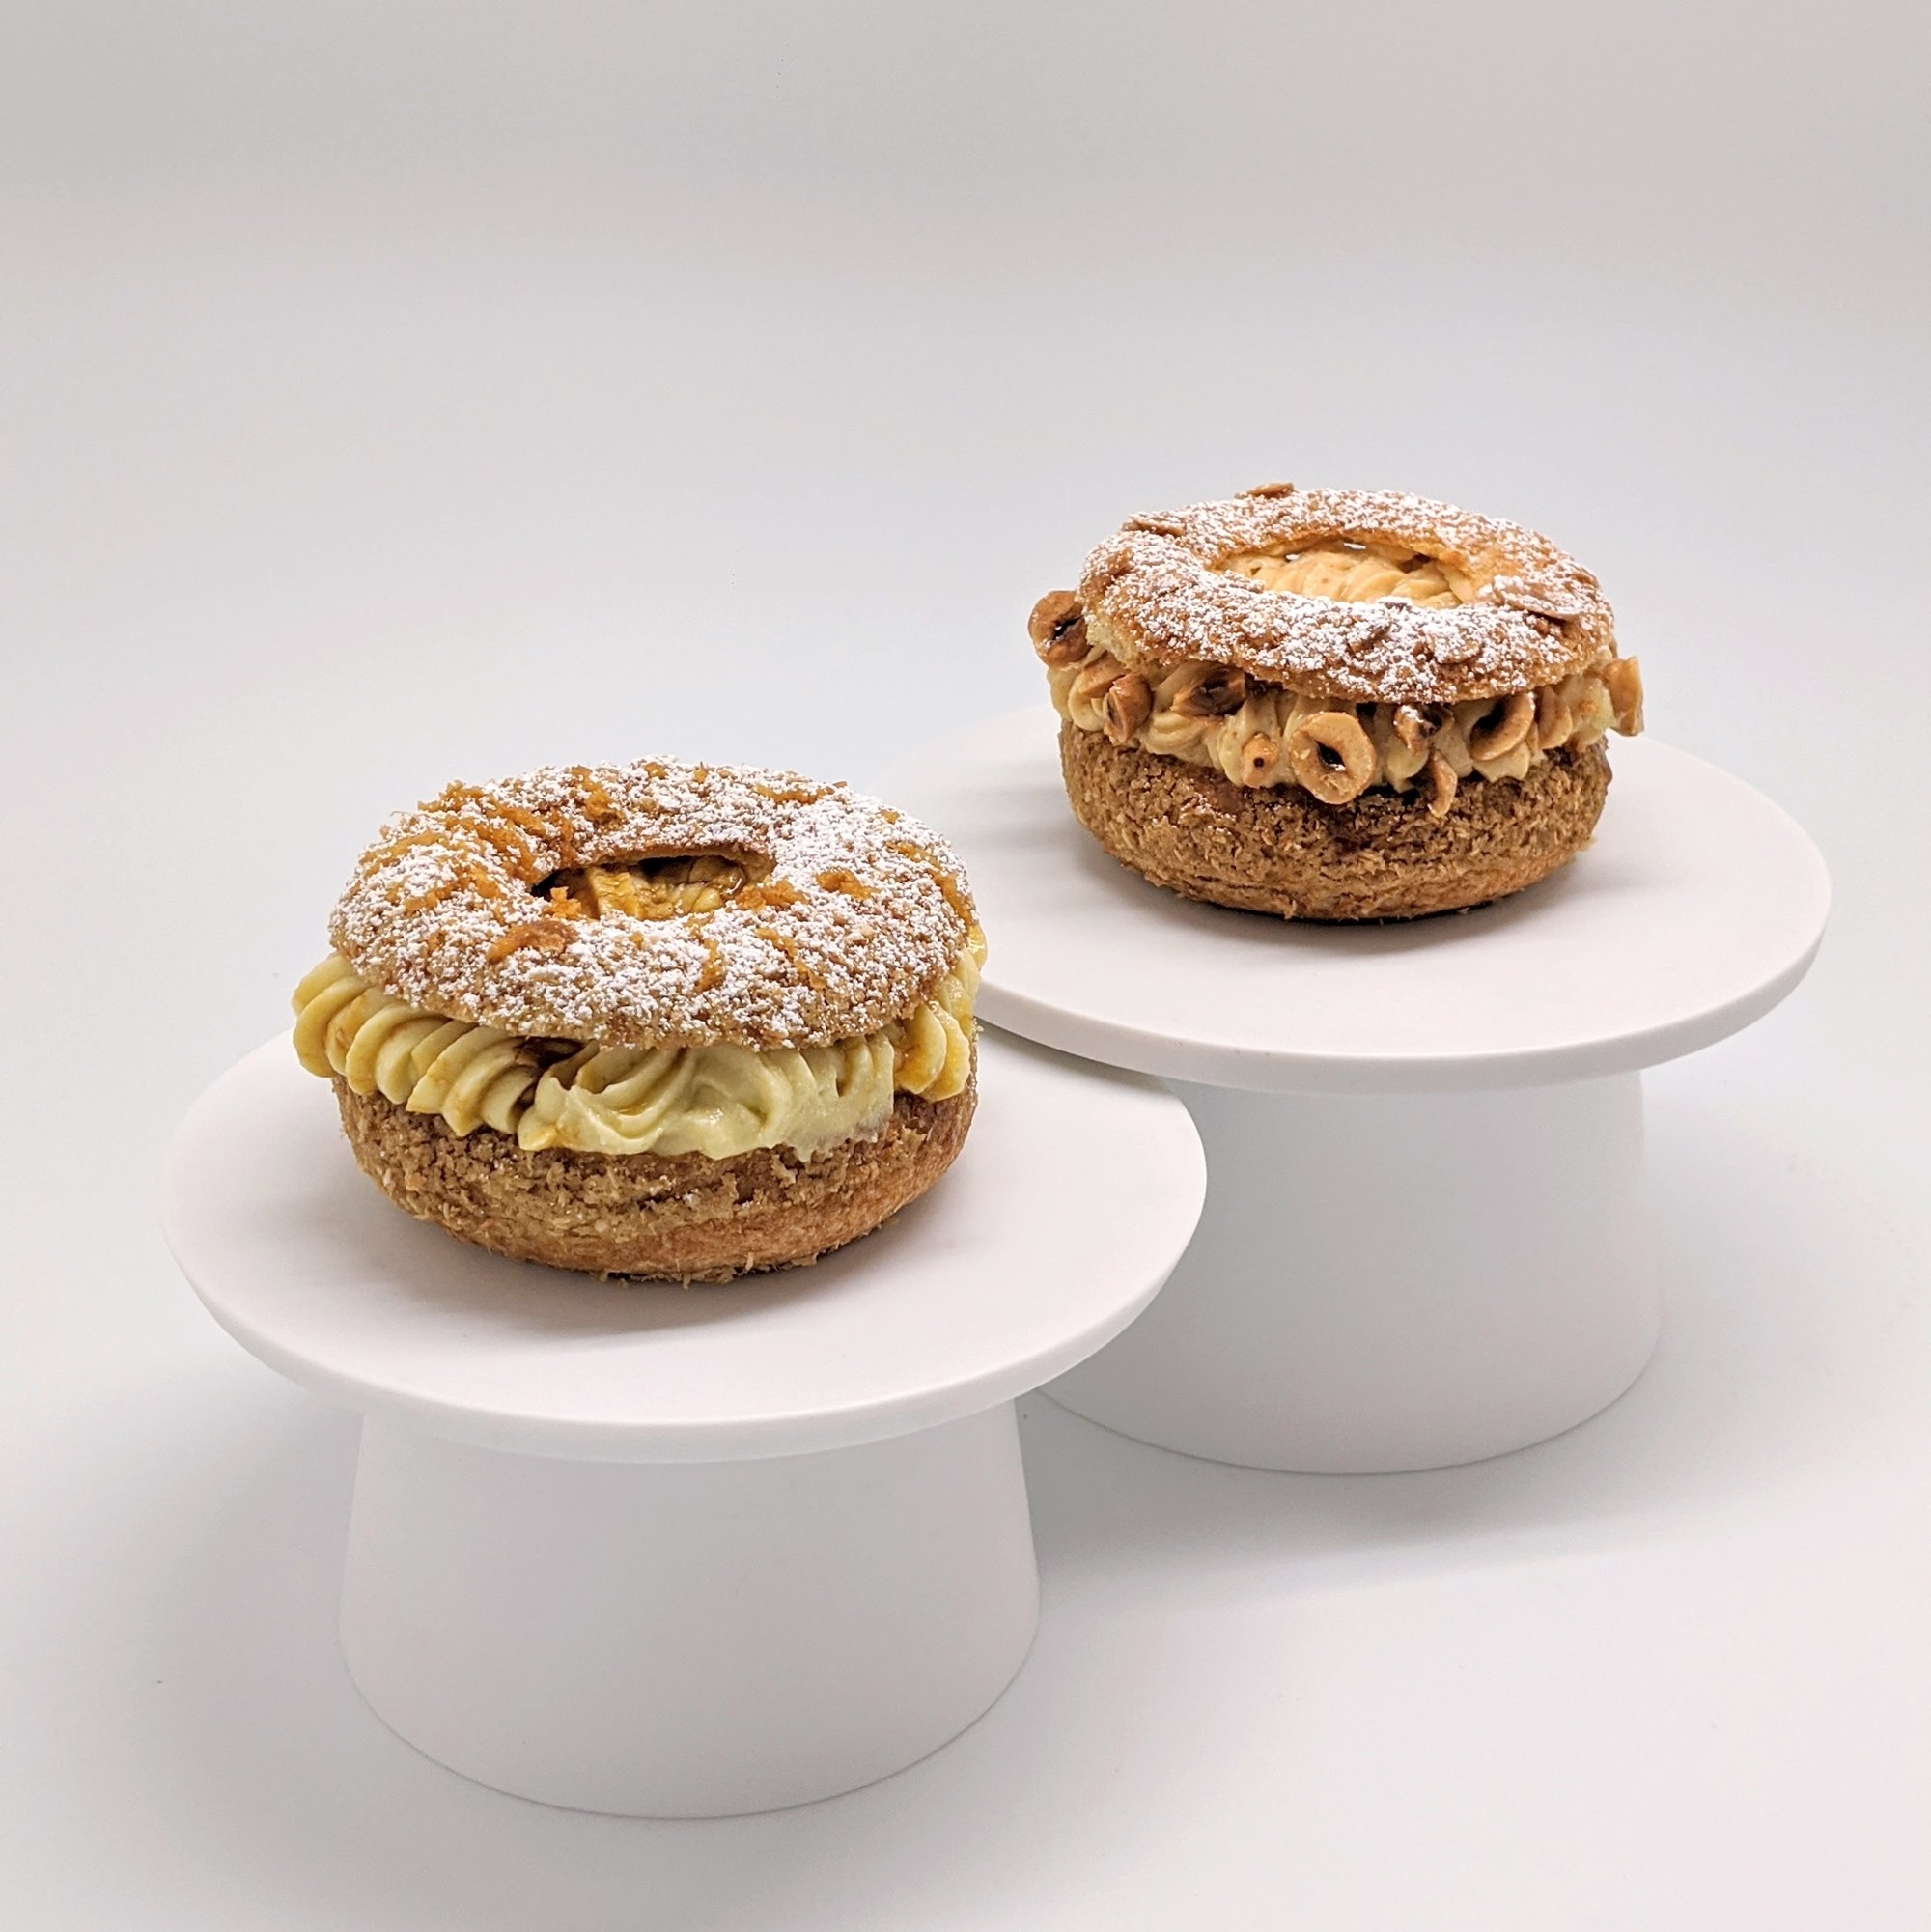 Odette At Home Le P.b.s Paris Brest Paris Singapour